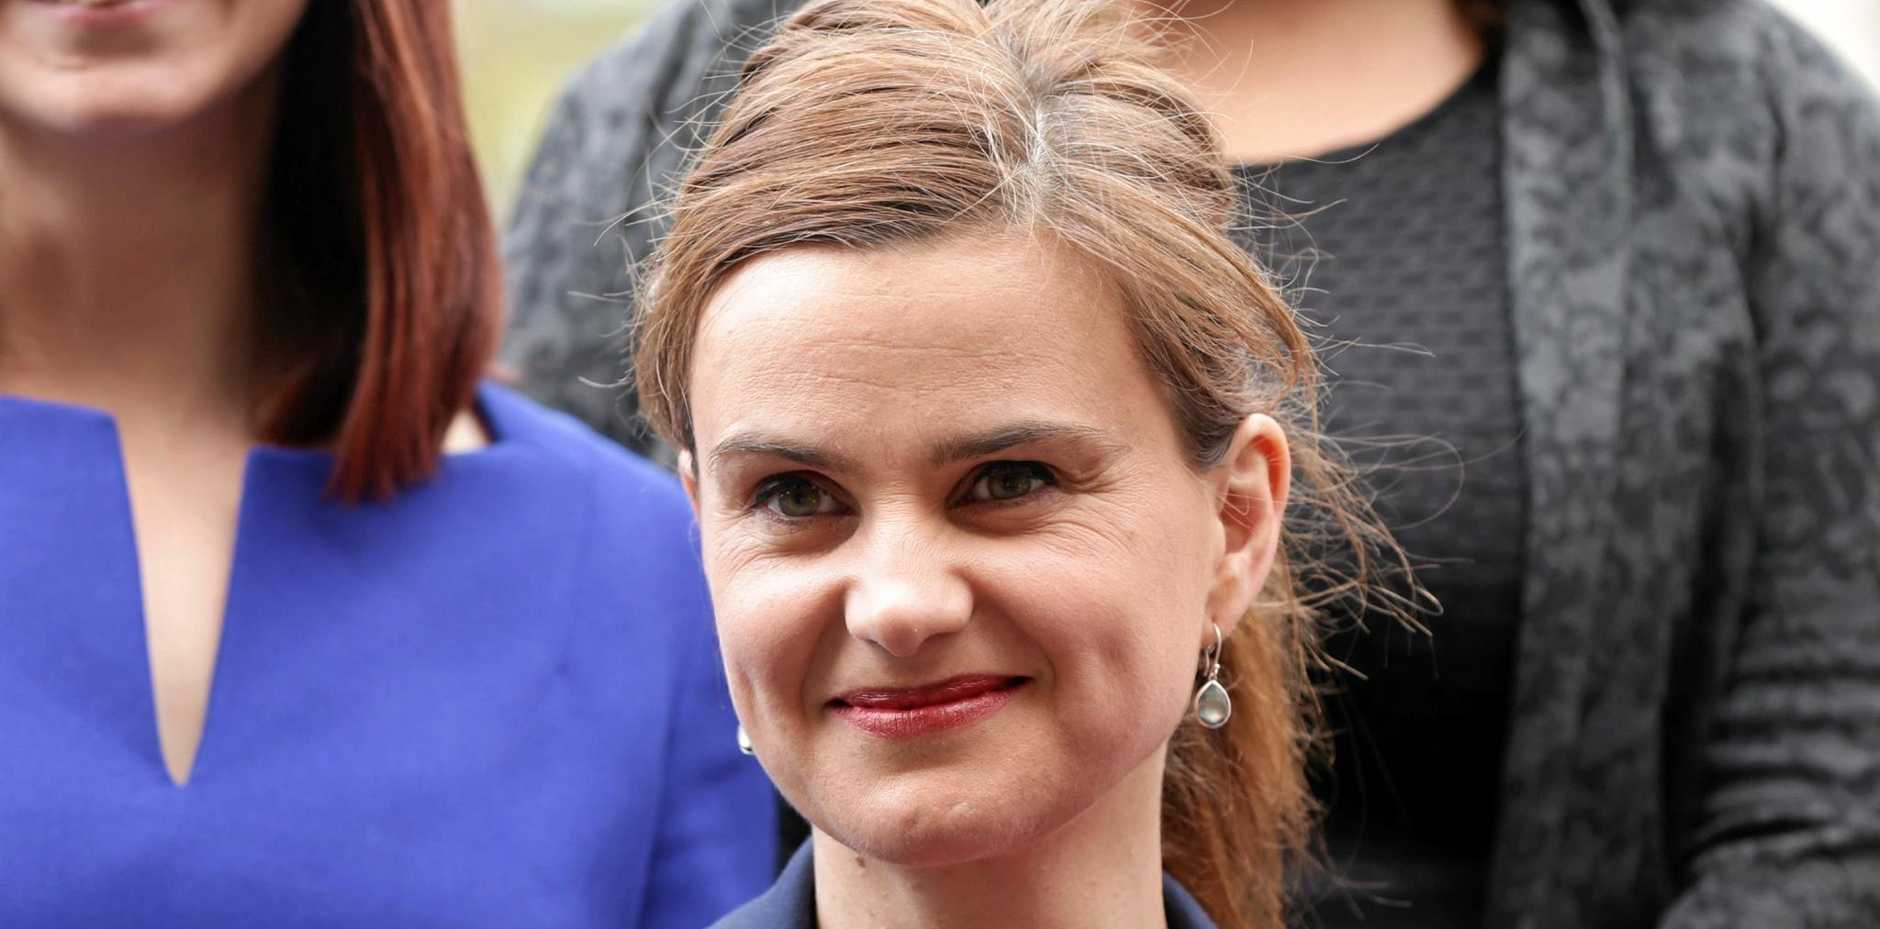 British Labour MP Jo Cox was brutally killed in the street outside her electoral office.